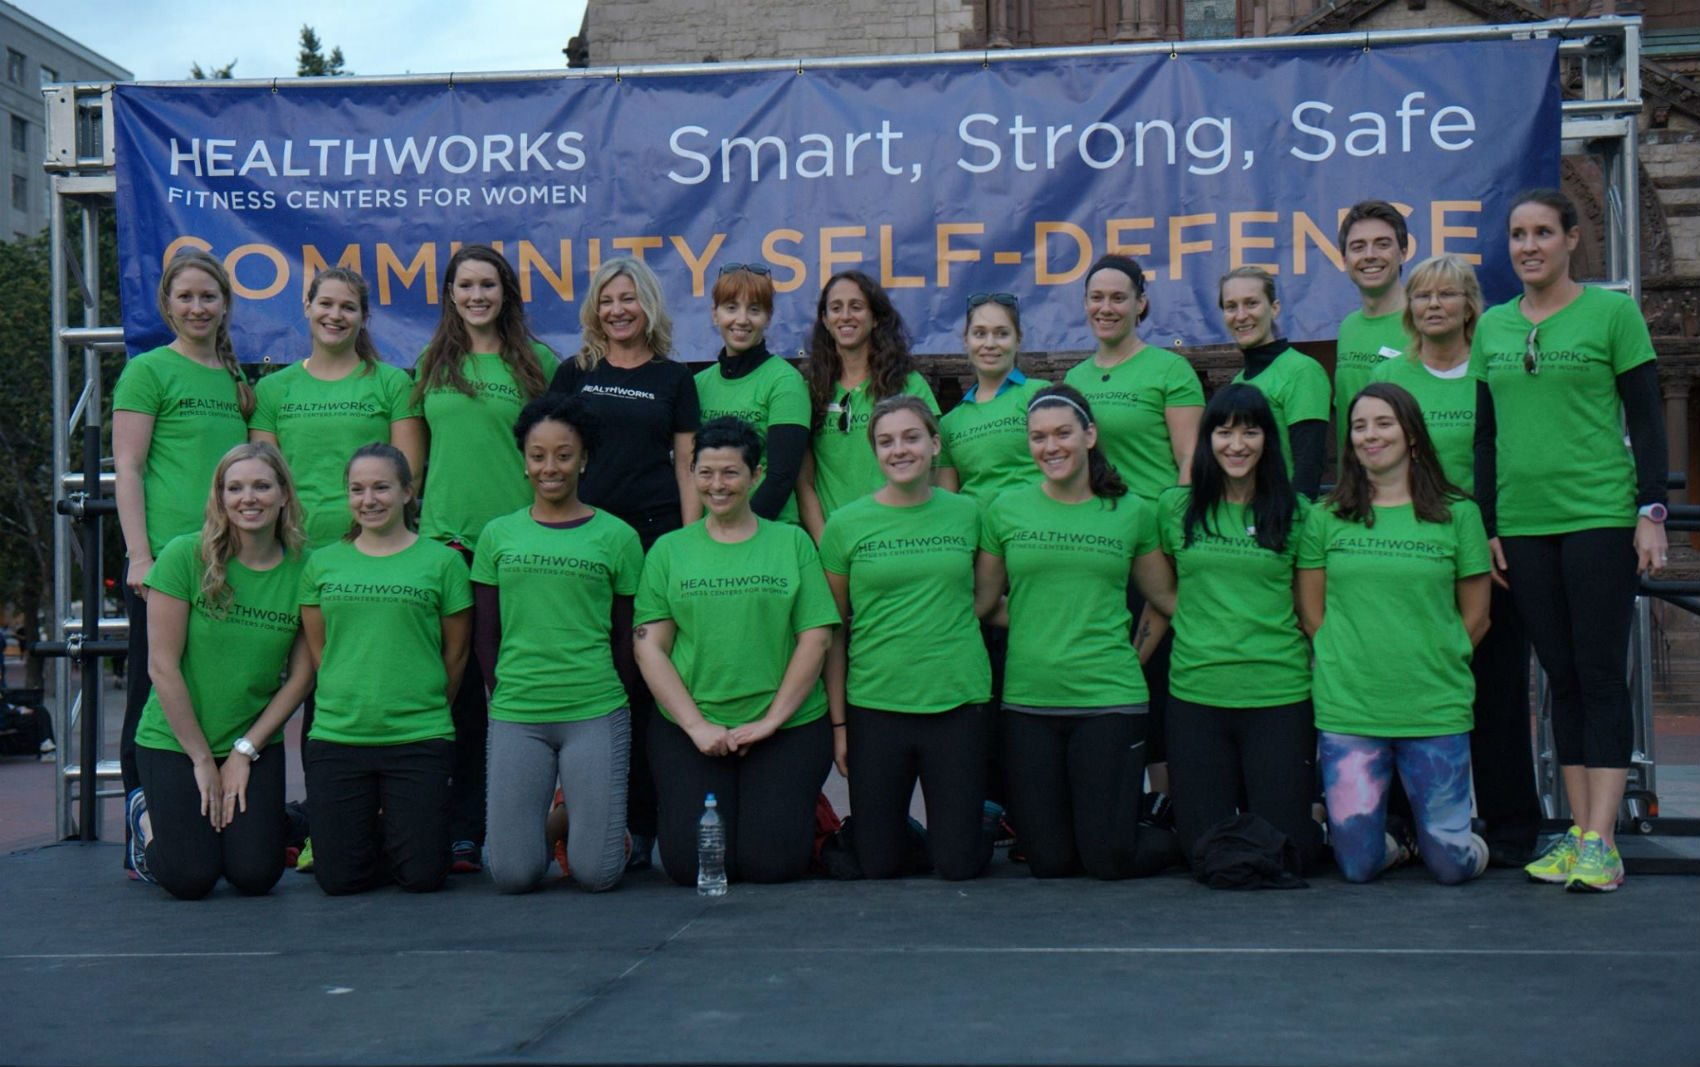 Operation IMPACT: Empowering Women Through Self-Defense (Snag Your Spot!!)